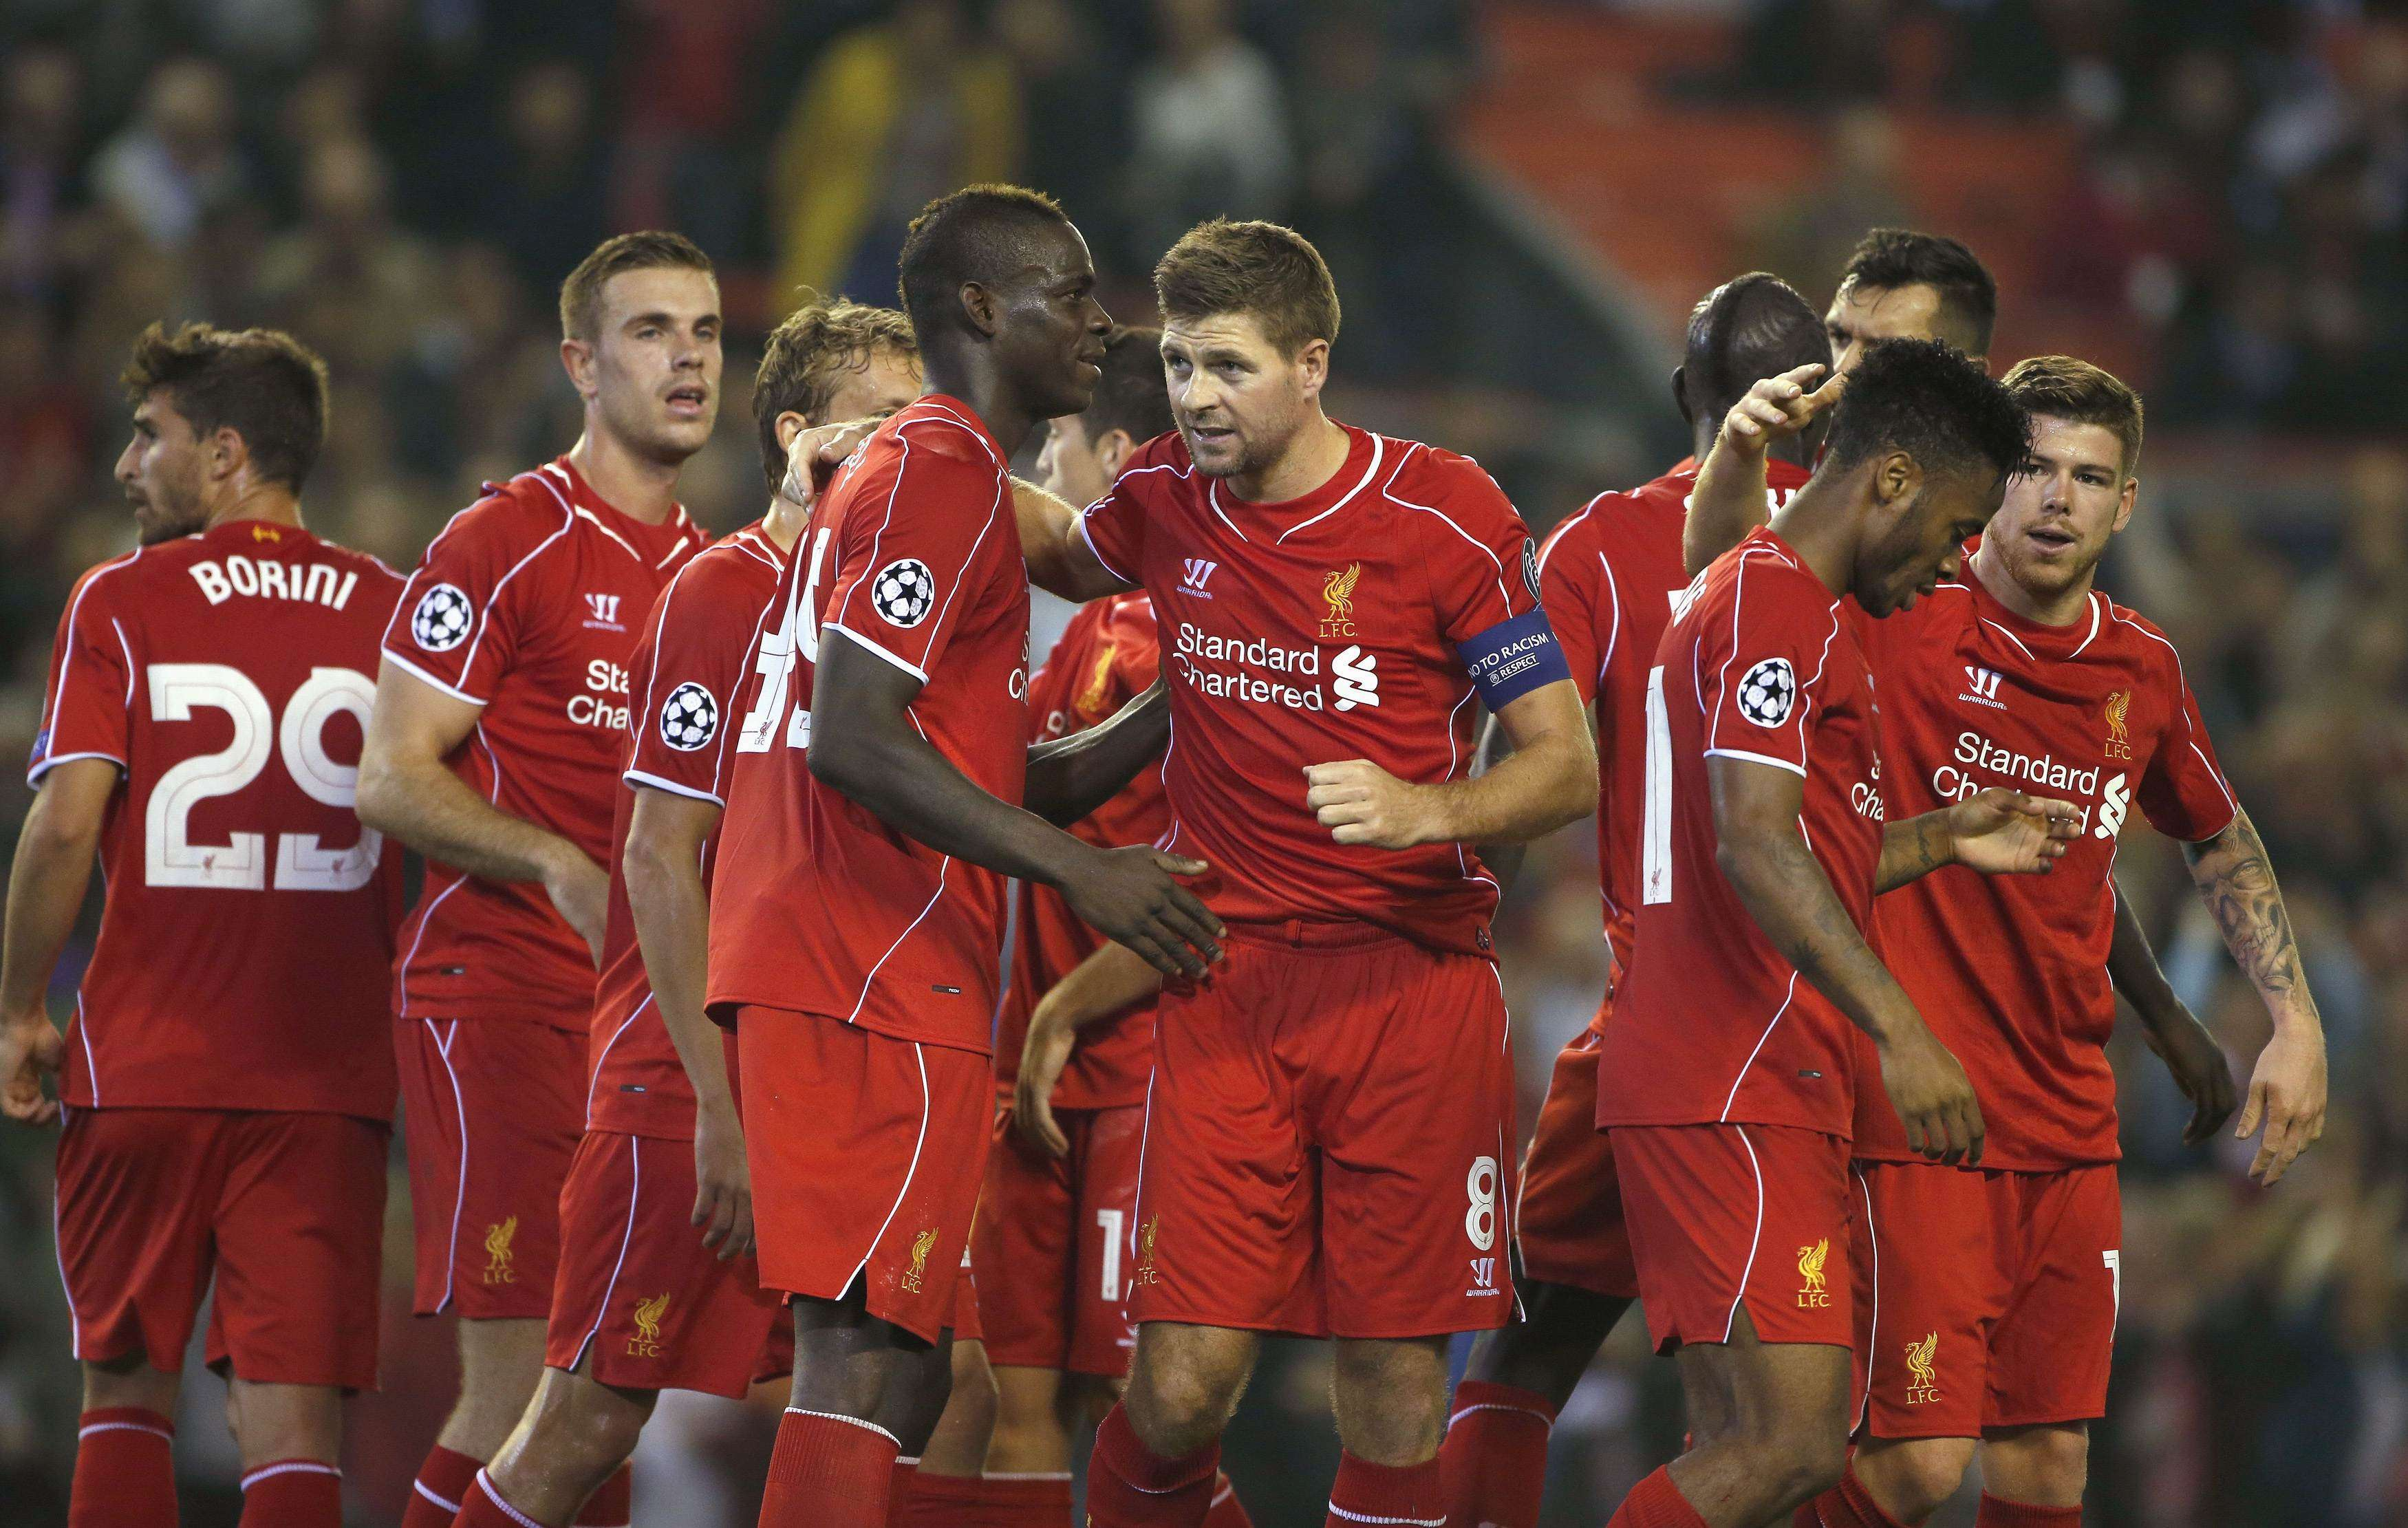 Liverpool's Steven Gerrard (C) celebrates with teammates after scoring a penalty against Ludogorets during their Champions League soccer match at Anfield in Liverpool, northern England September 16, 2014. REUTERS/Phil Noble (BRITAIN - Tags: SPORT SOCCER) Foto: PHIL NOBLE/REUTERS